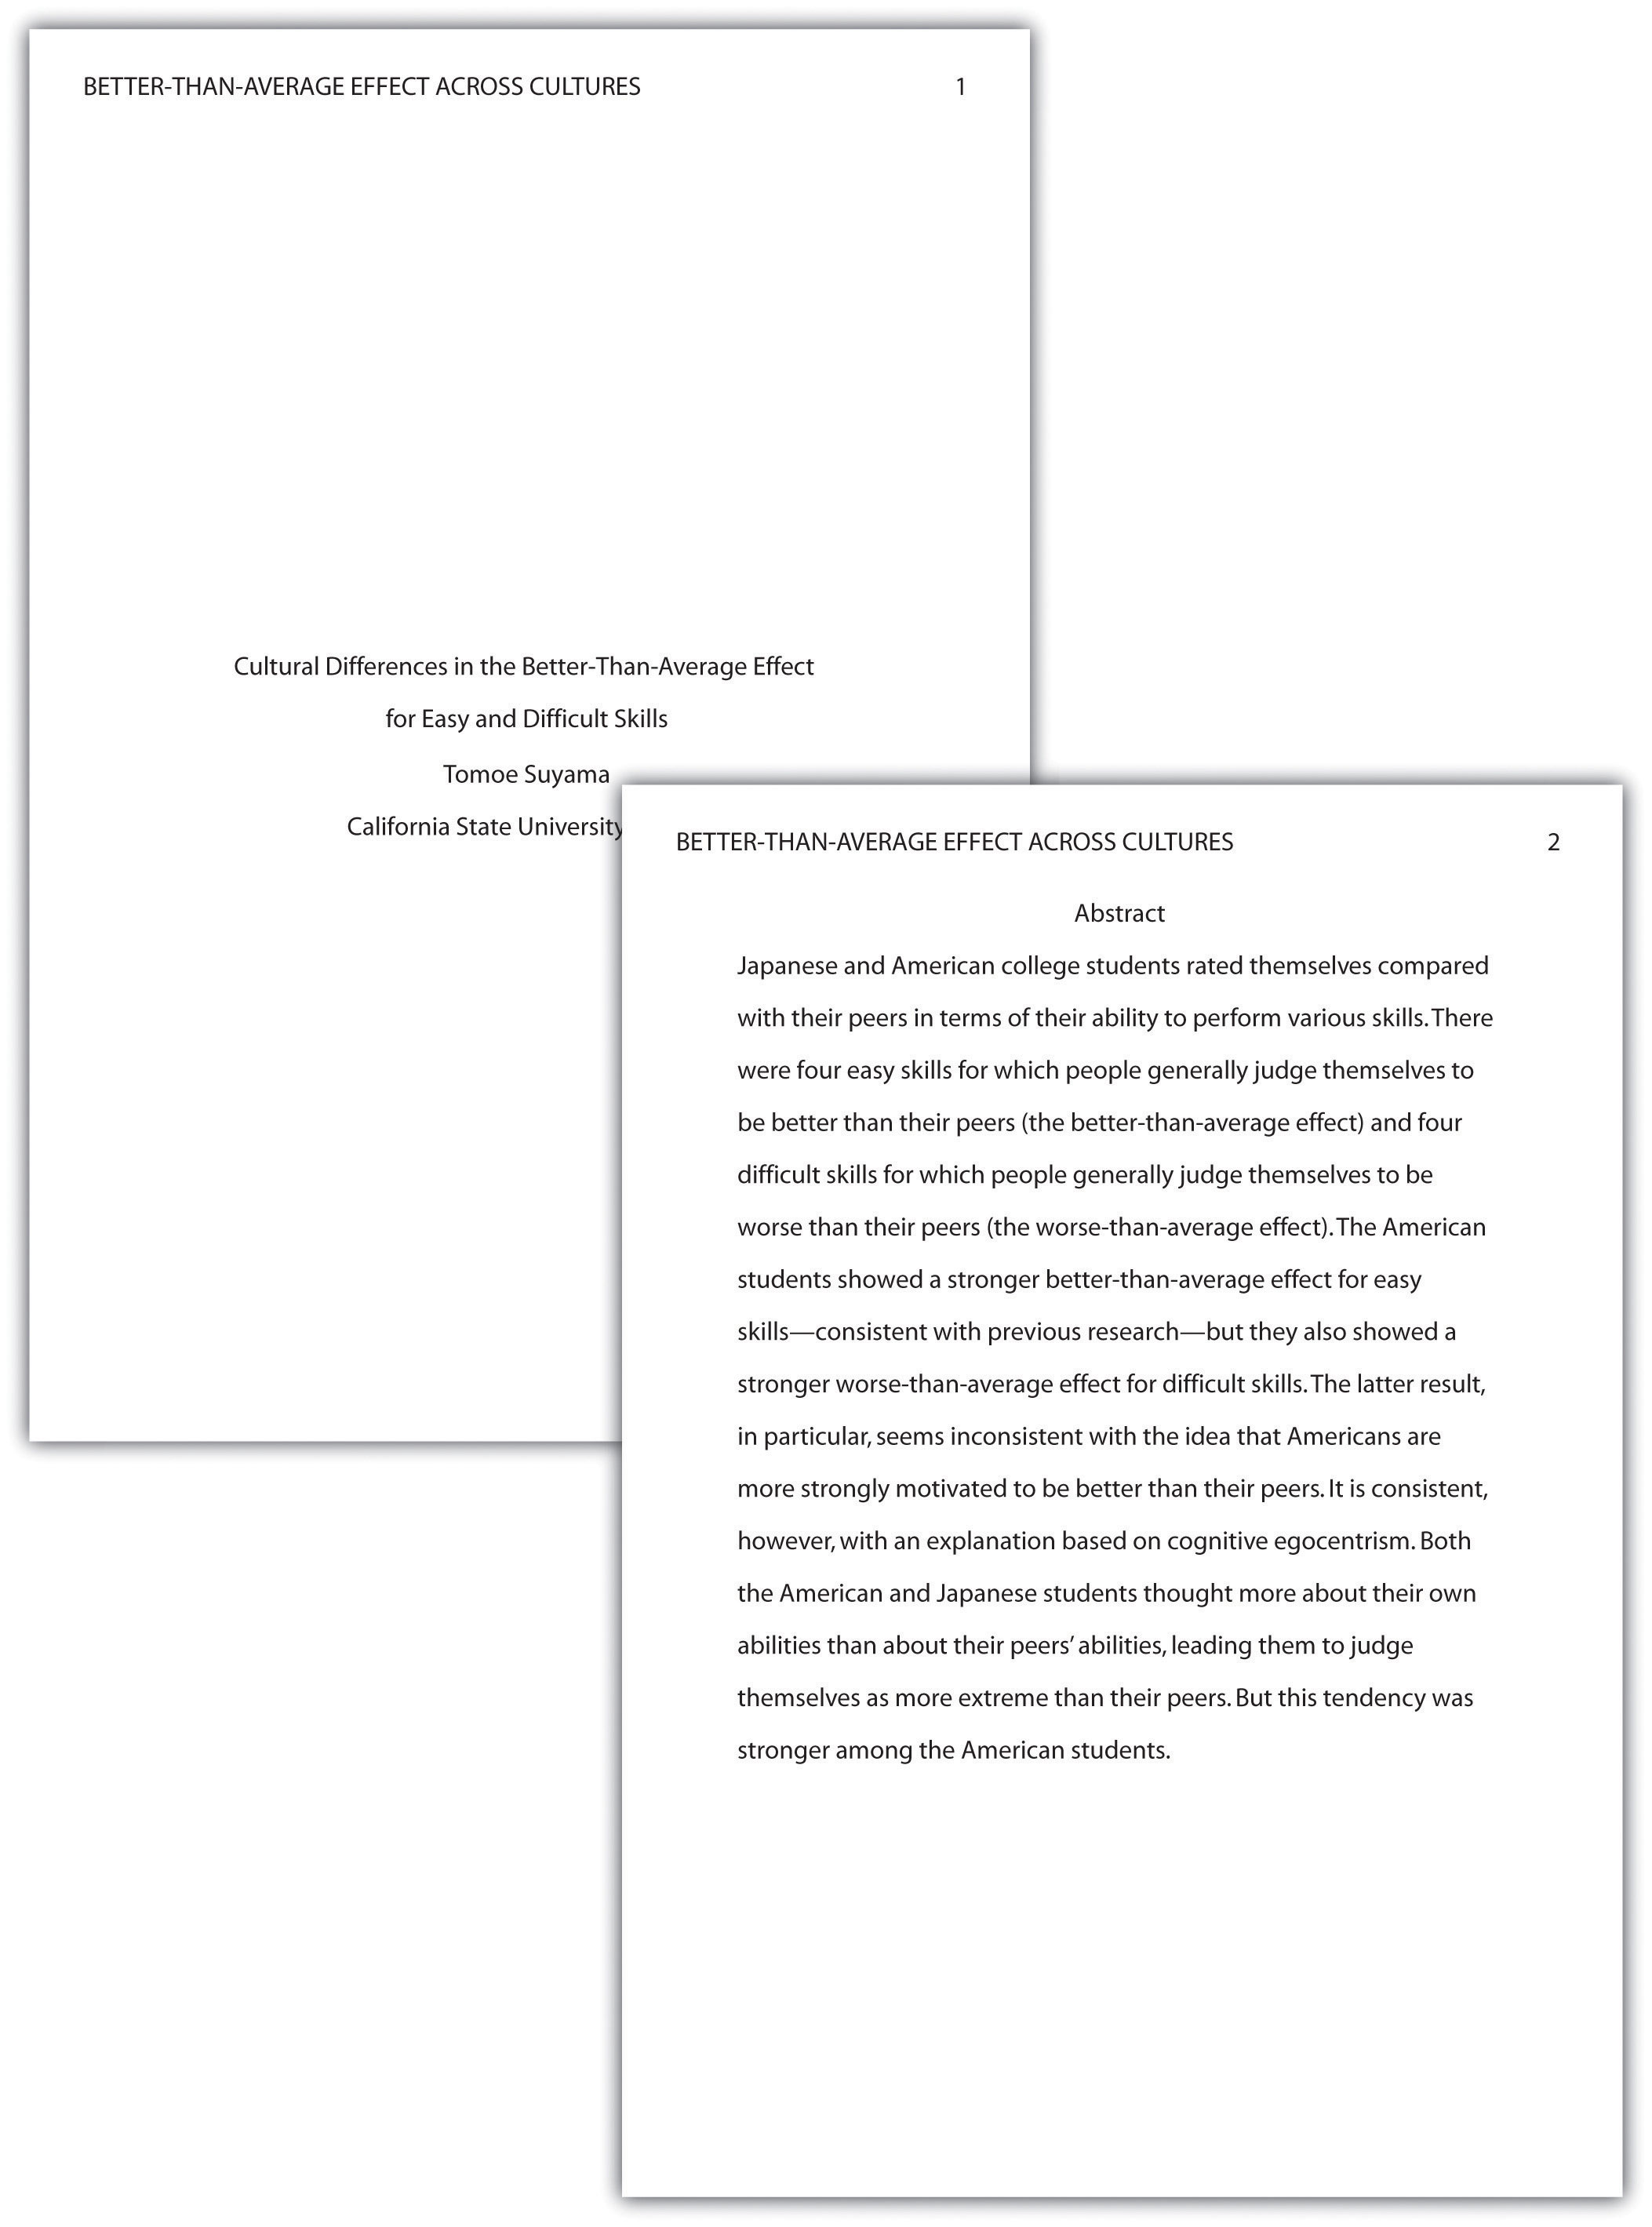 apa research report Apa style report (6th edition) need to create an apa style research term paper use this pre-formatted template to create an apa compliant report or thesis.